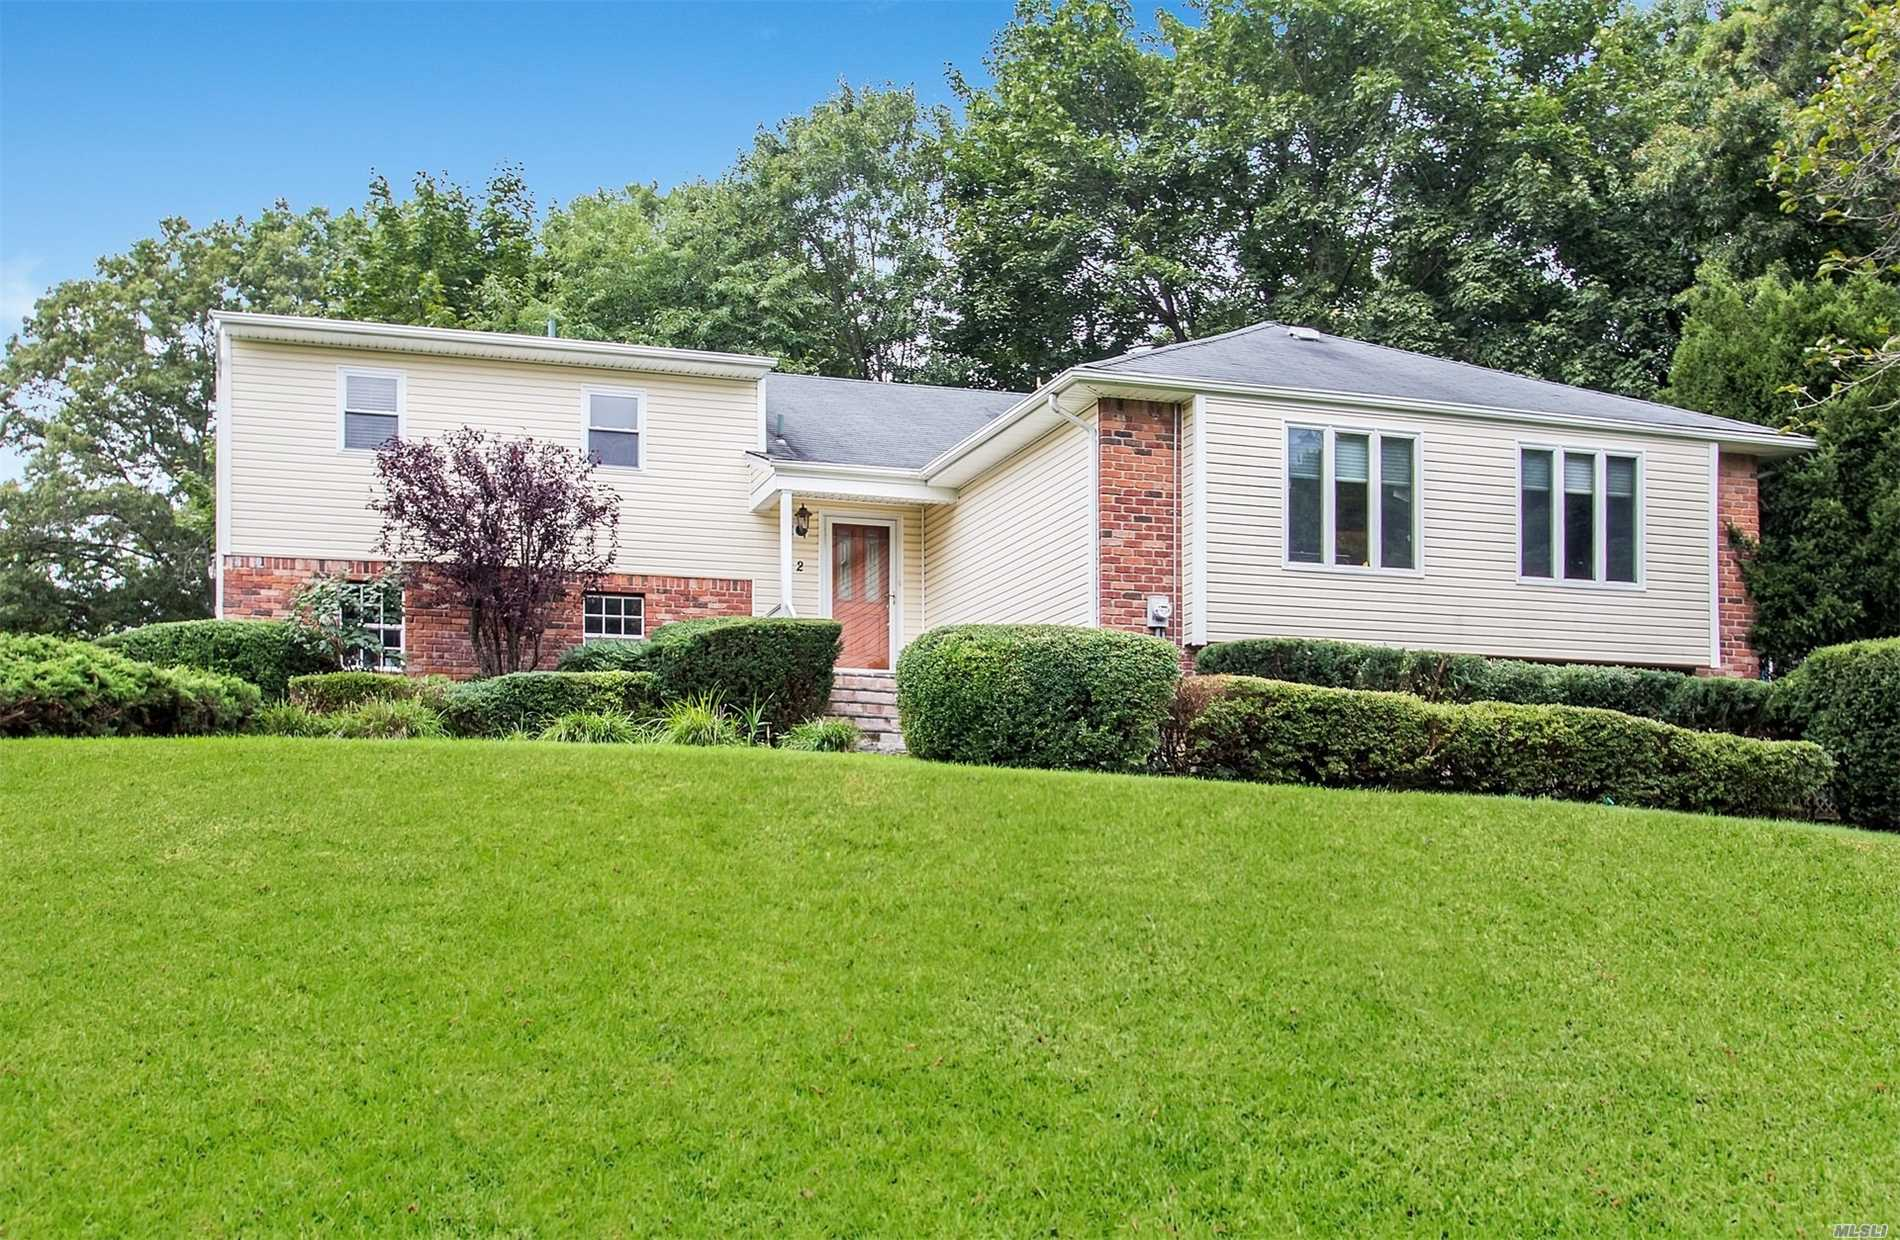 Wonderful Wichard Front To Back Split, 4 Br, 2.5 Updated Baths, Great Room, Beautiful Hardwood Flooring, Updated Windows, New Cesspool, Newer Siding, Updated Eik W/Maple Cabinetry/Granite/Stainless Steel Appliances, Recessed Lighting, Central Ac, Closet Systems, Economical/Quiet Gas Hot Water Heat. Taxes With Basic Star $15, 959.96.